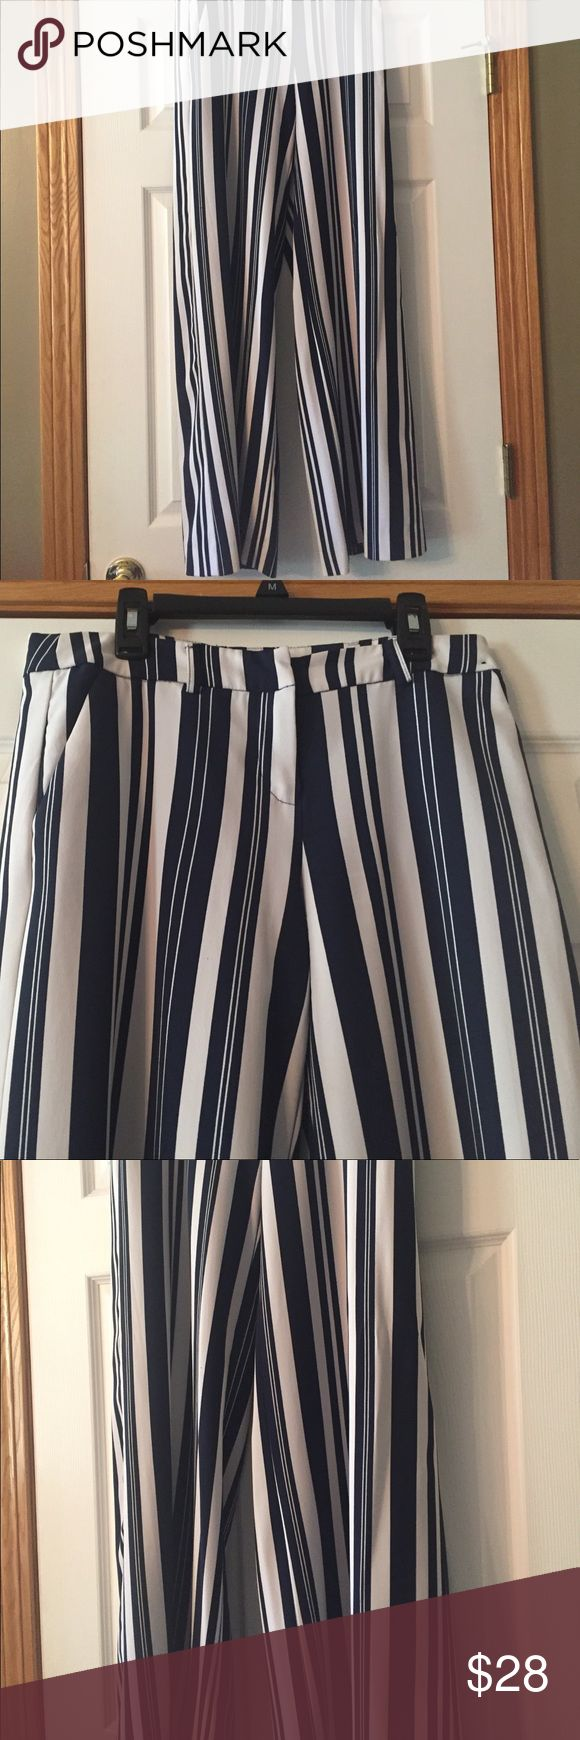 New York & Co. Striped Palazzo Pant - 0 Lovely striped (navy & white) Palazzo Pant from Mew York and Co. worn only a couple of times. Zipper closure. Size 0. New York & Company Pants Boot Cut & Flare